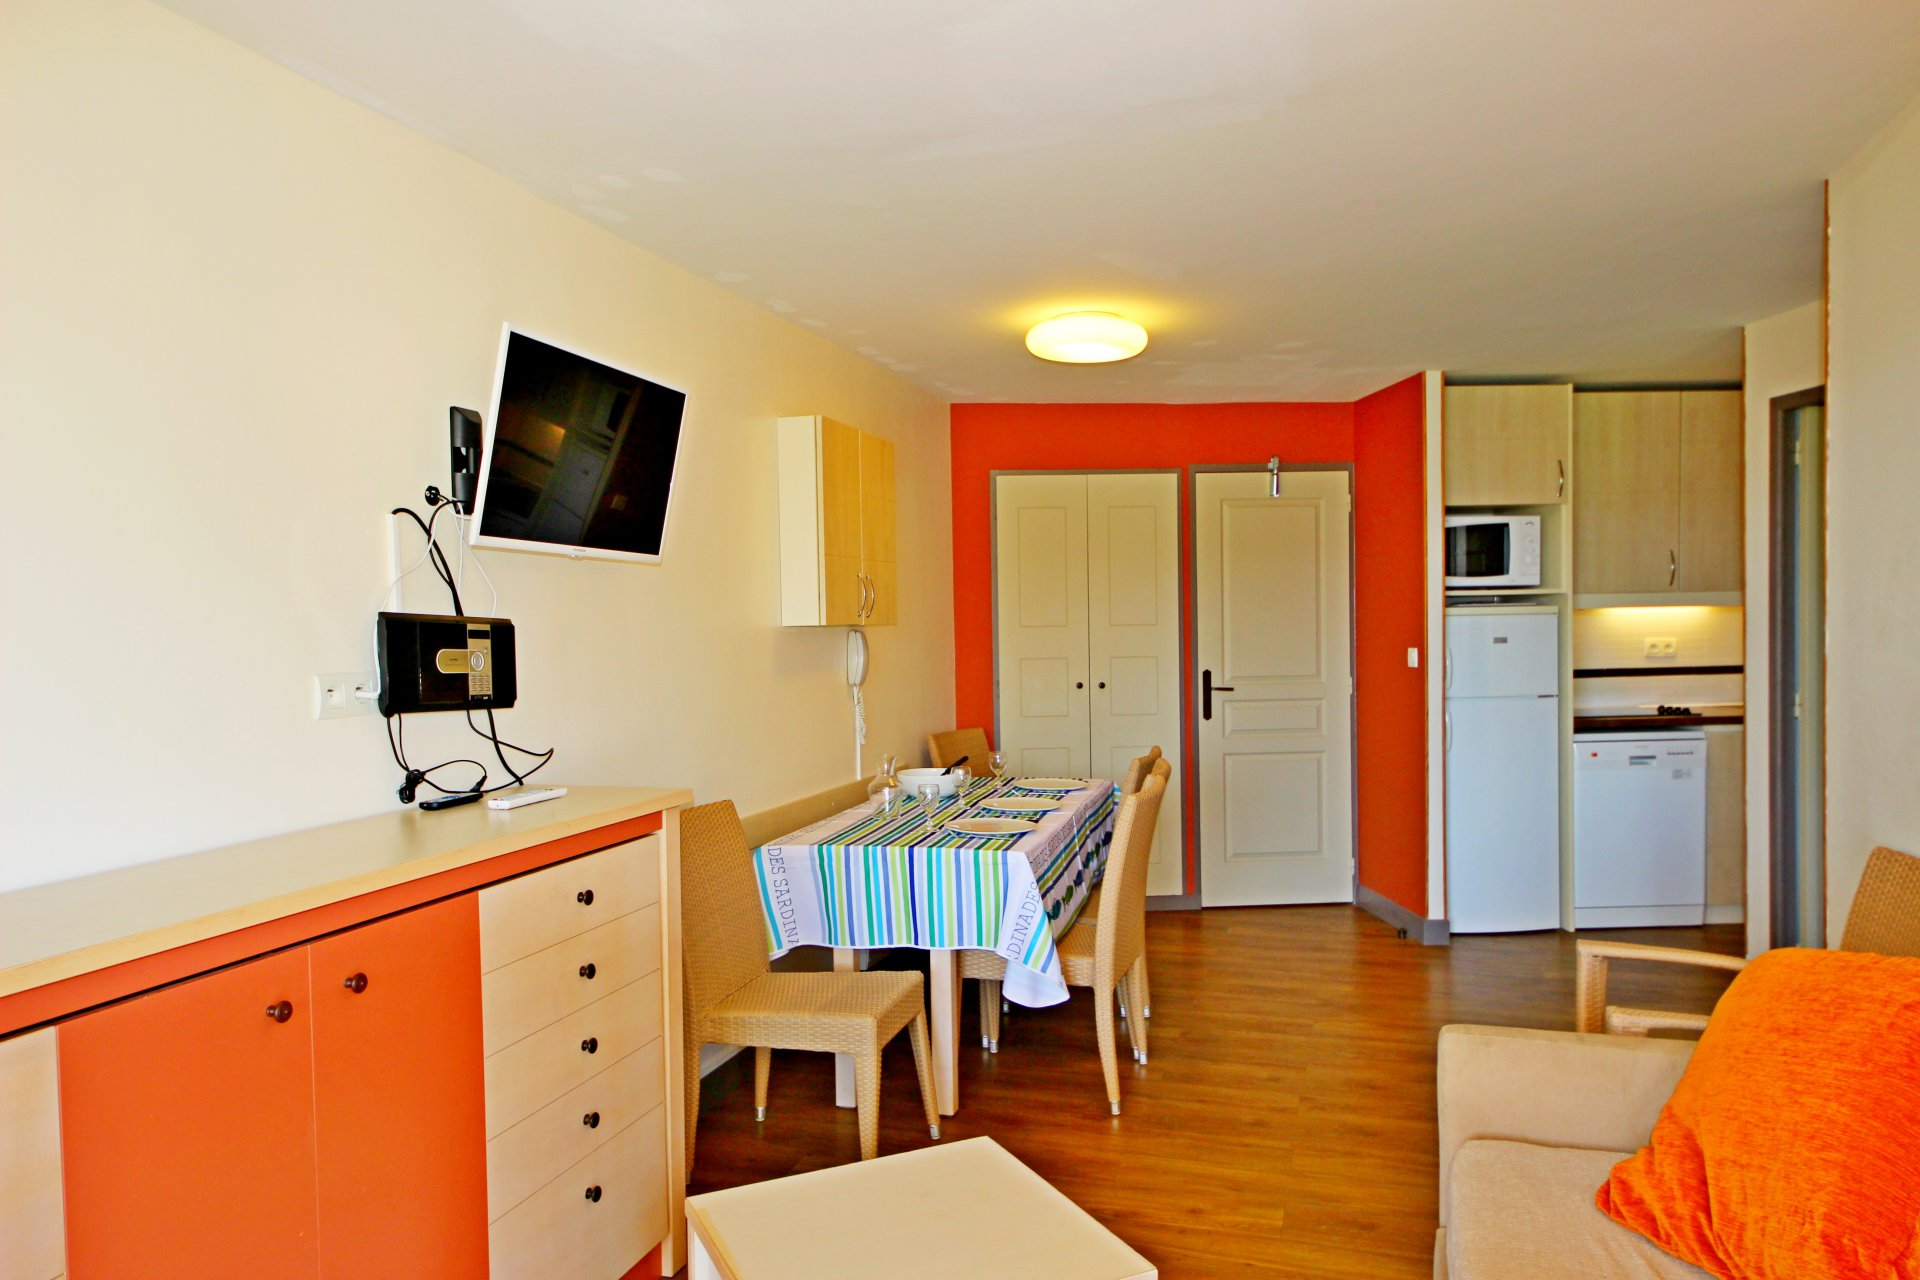 ApartmentFloor 1st, View Sea, Position east, General condition Good, Kitchen Fitted, Heating Separate ...